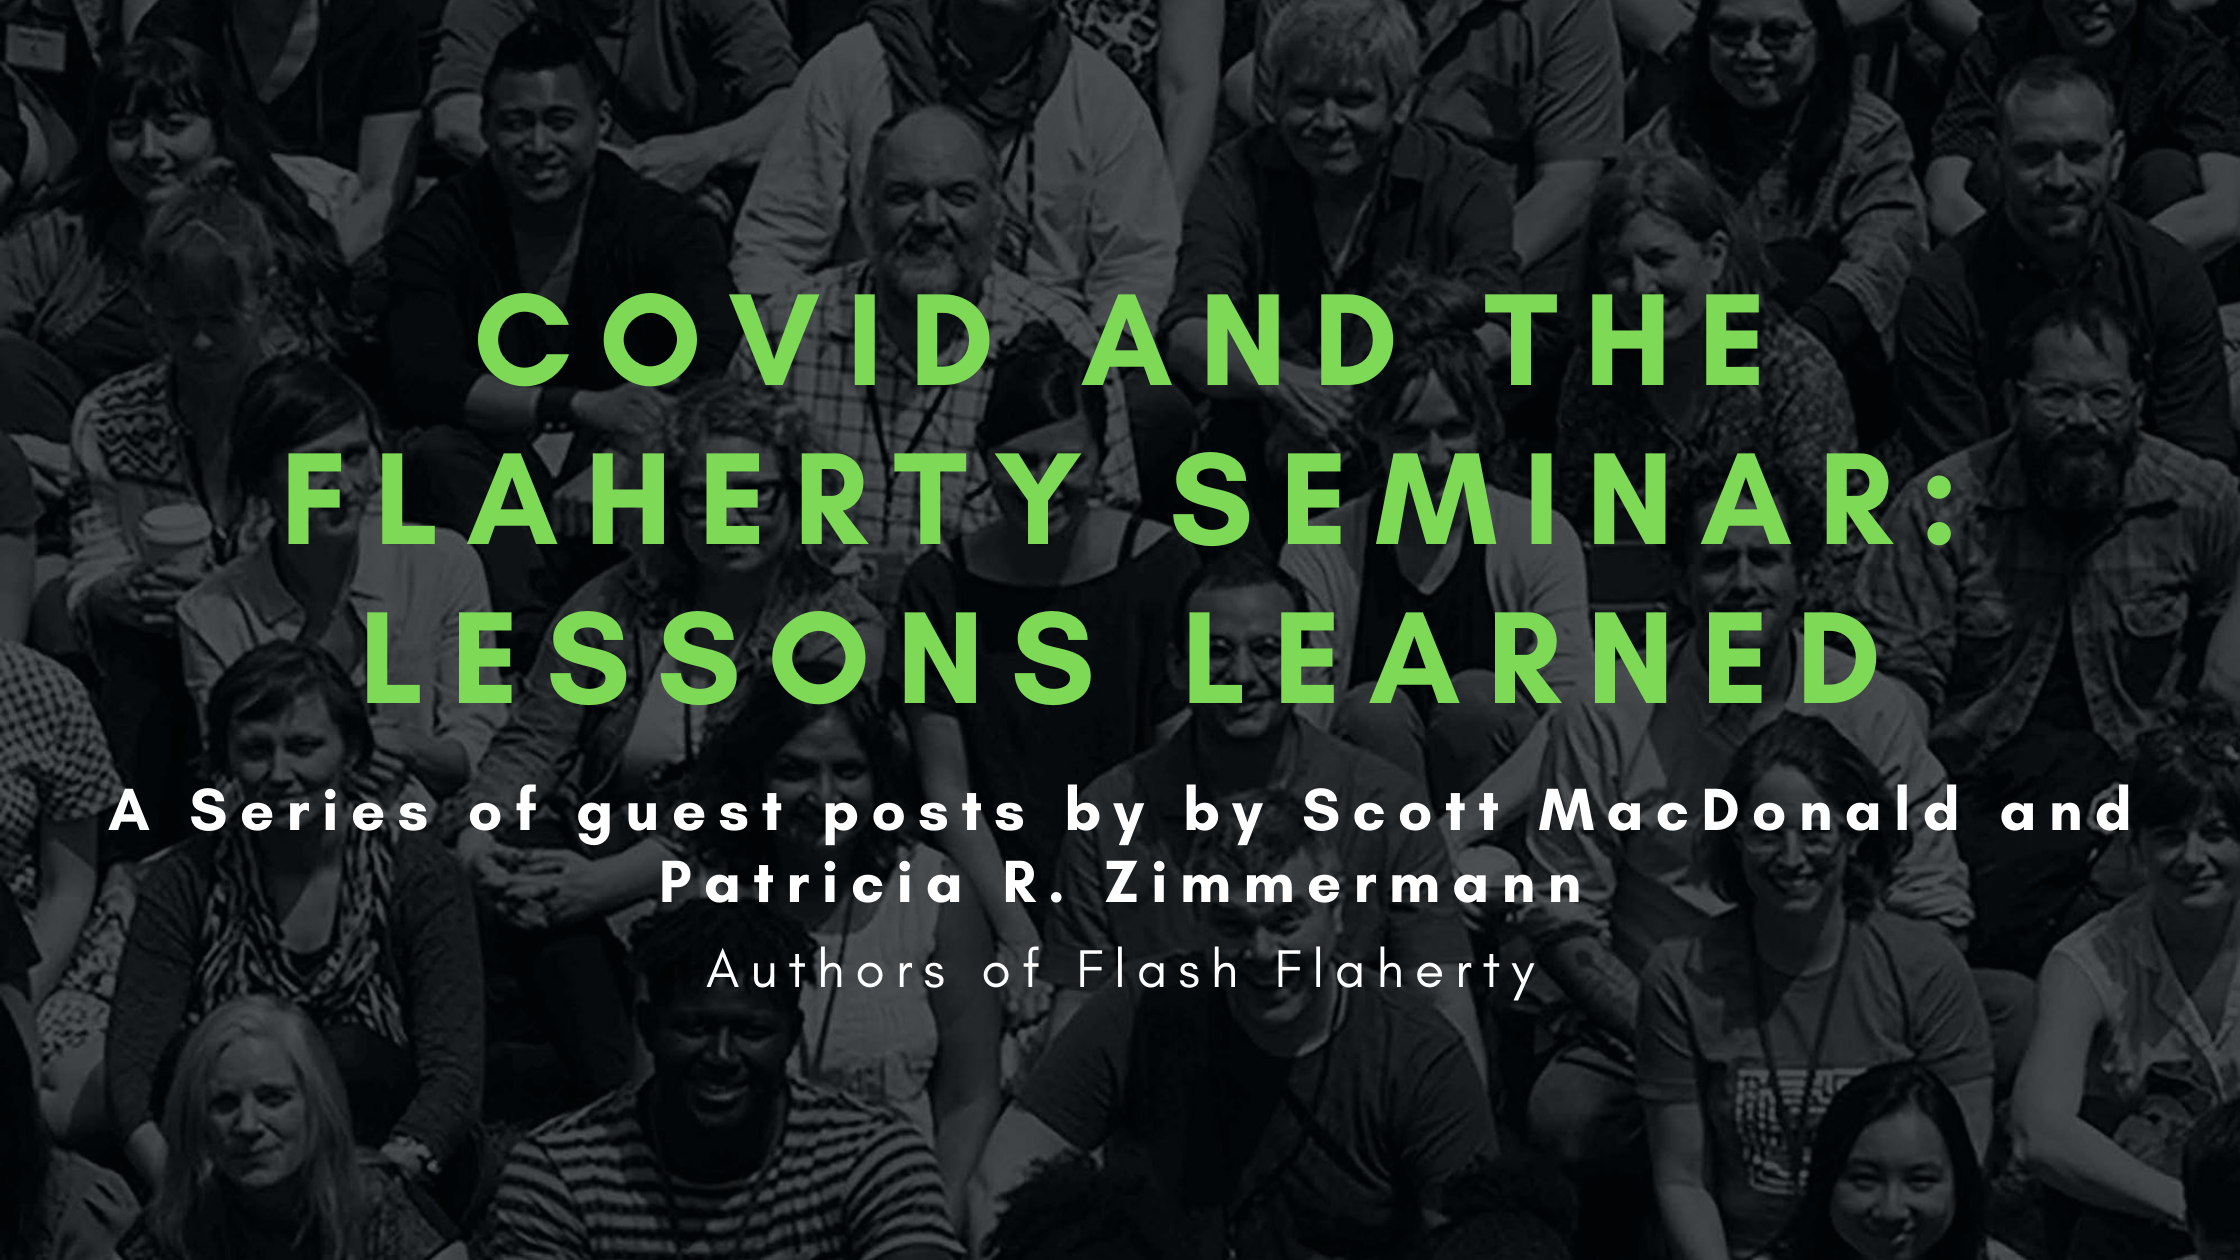 Flash Flaherty: COVID and The Flaherty Seminar: Lessons Learned